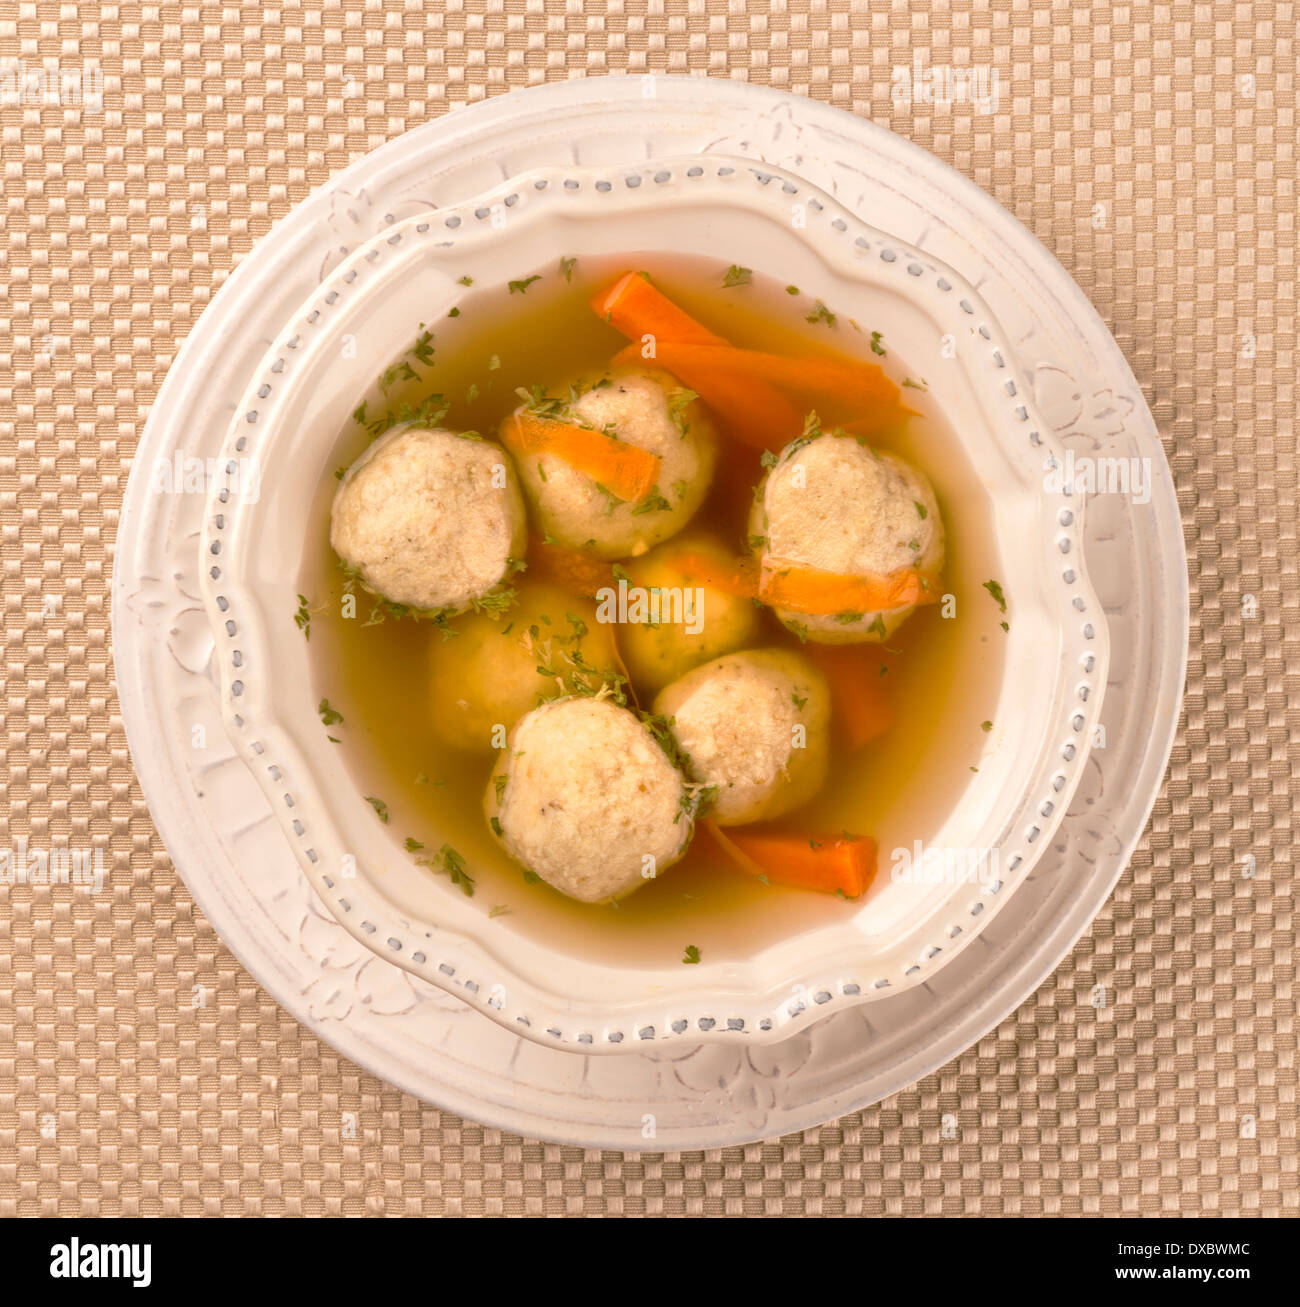 Traditional Matzah Ball Soup for Jewish Passover - Stock Image